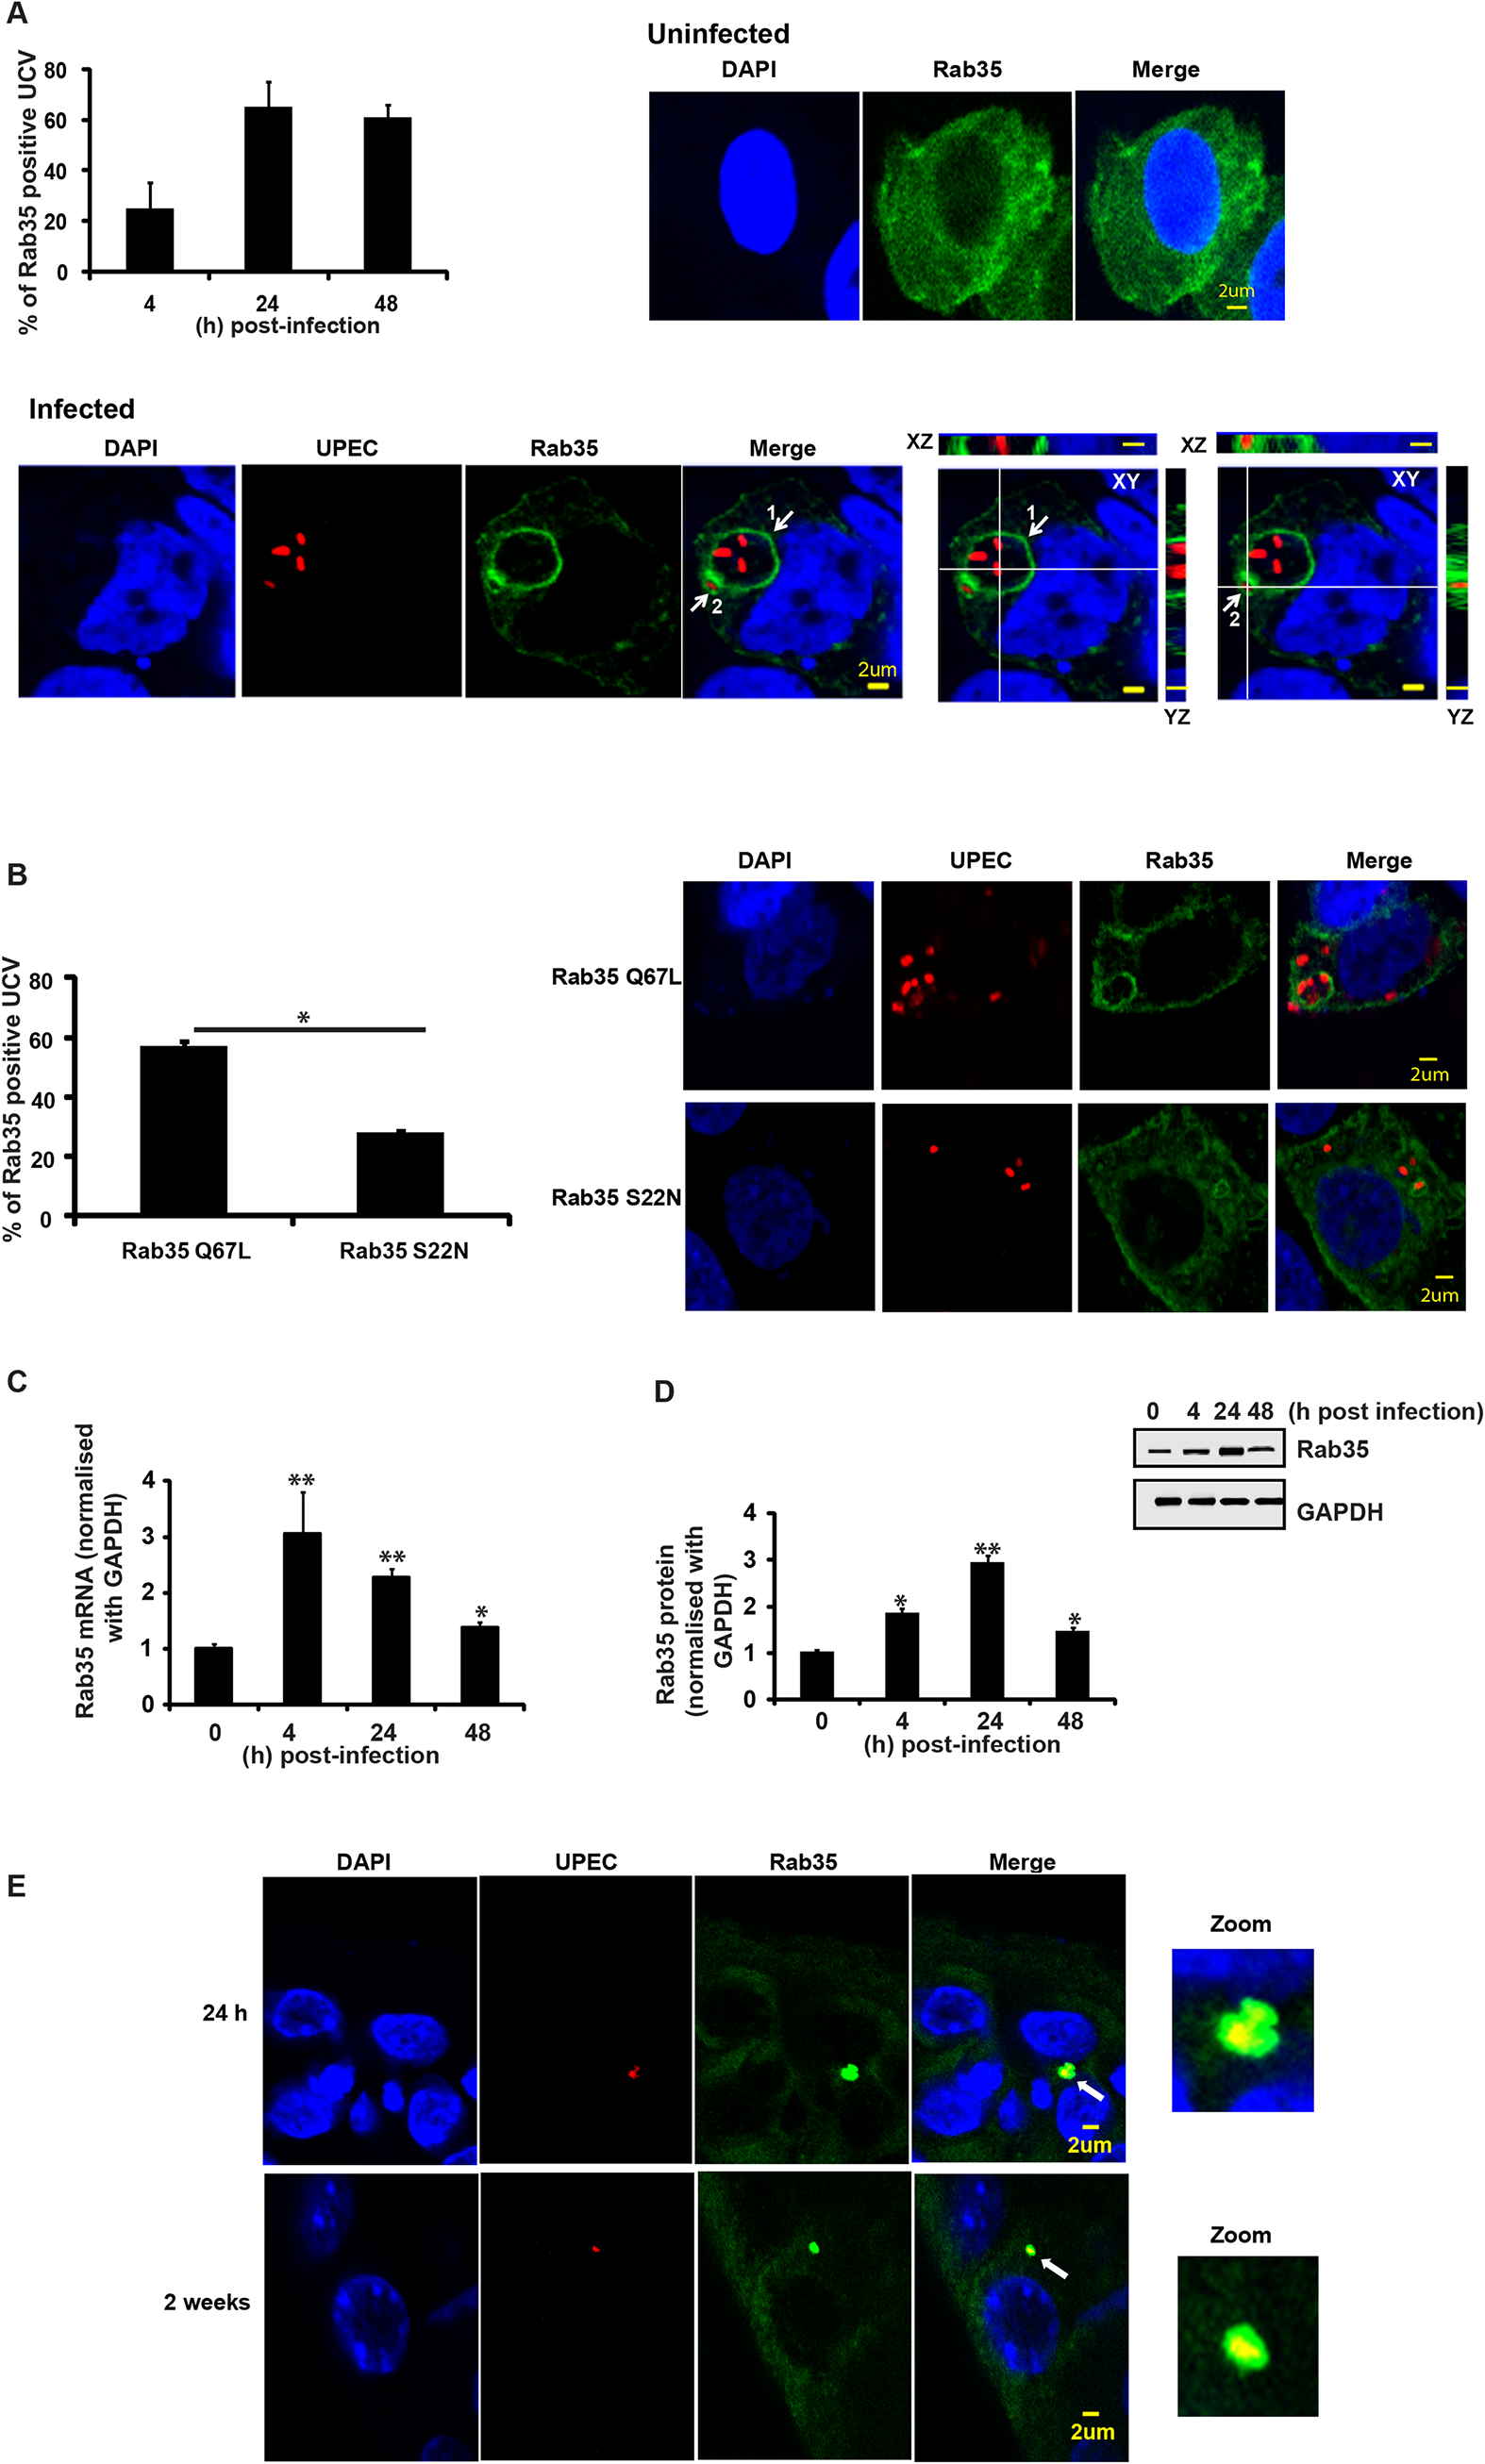 Rab35 protein localizes to UPEC-containing vacuole and is up regulated during UPEC infection.